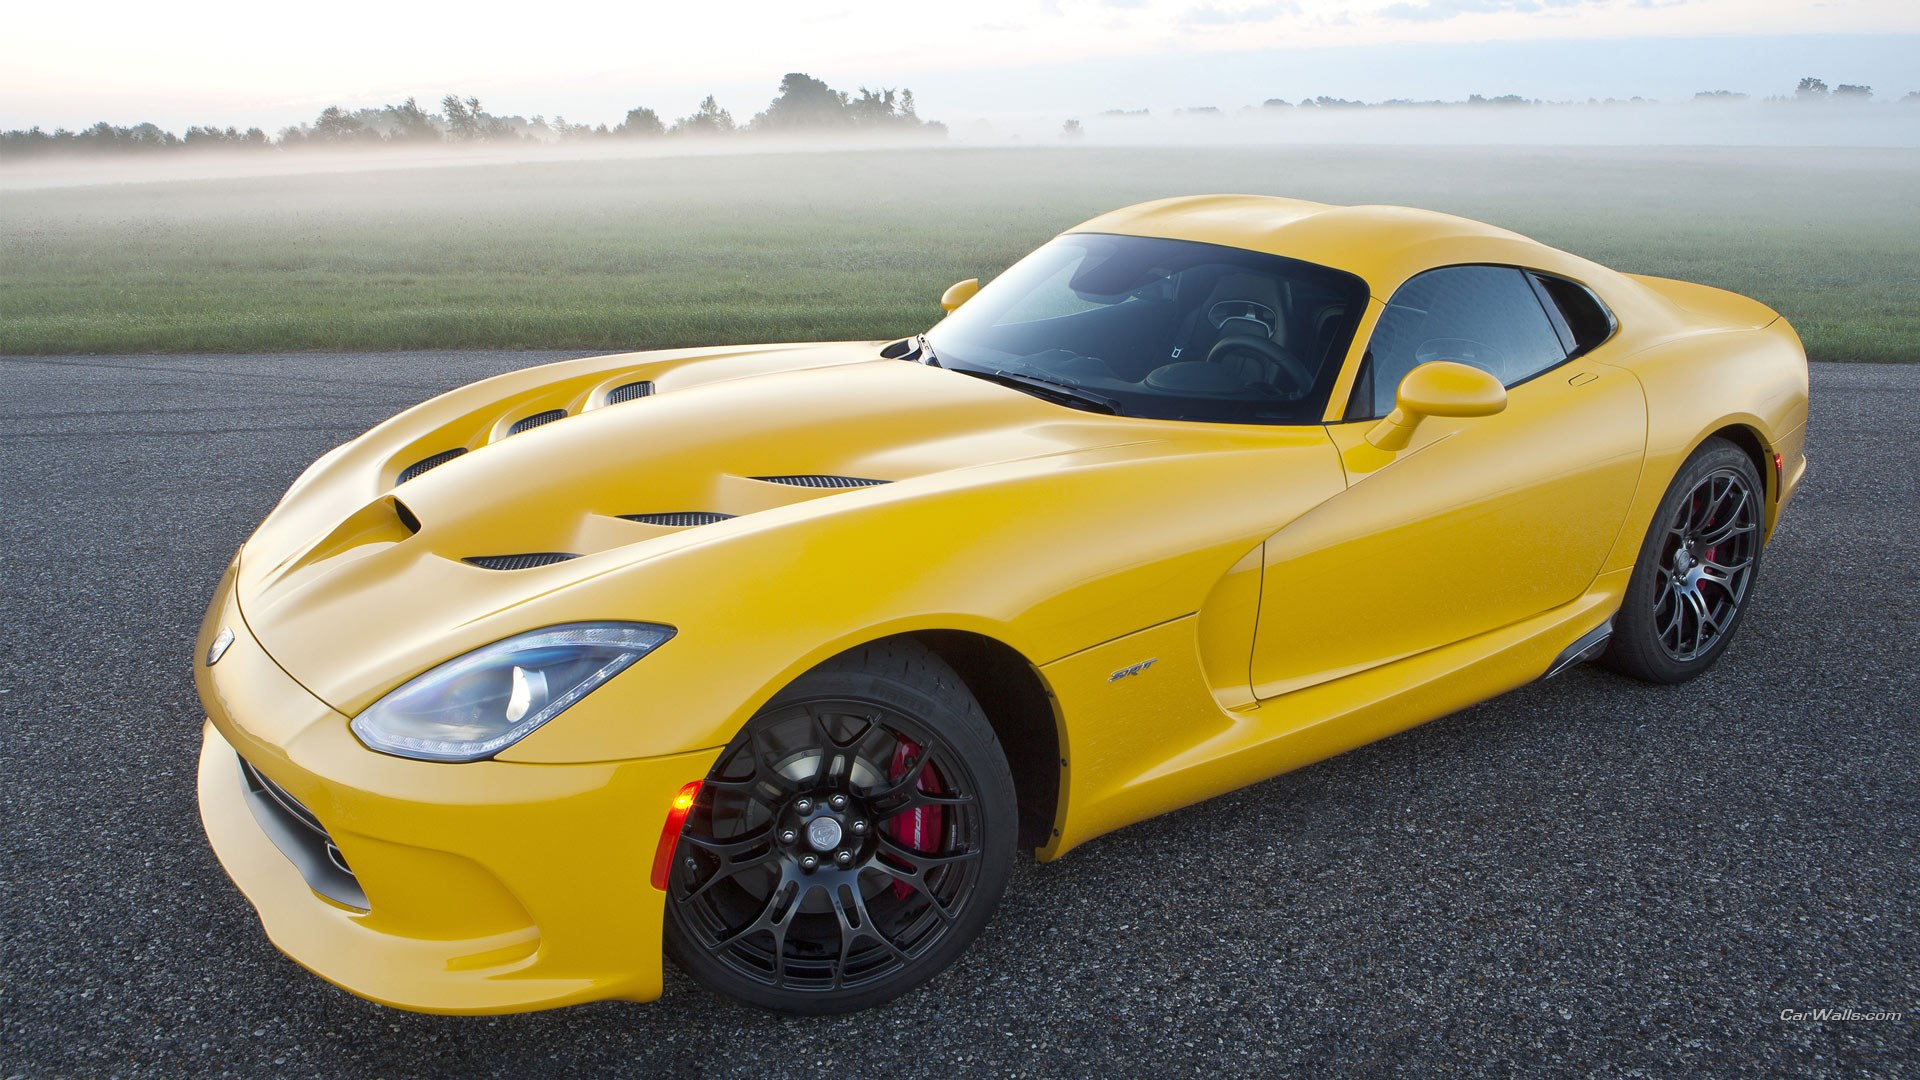 1920x1080-HQ-Definition-Desktop-dodge-srt-viper-gts-wallpaper-wpc580906